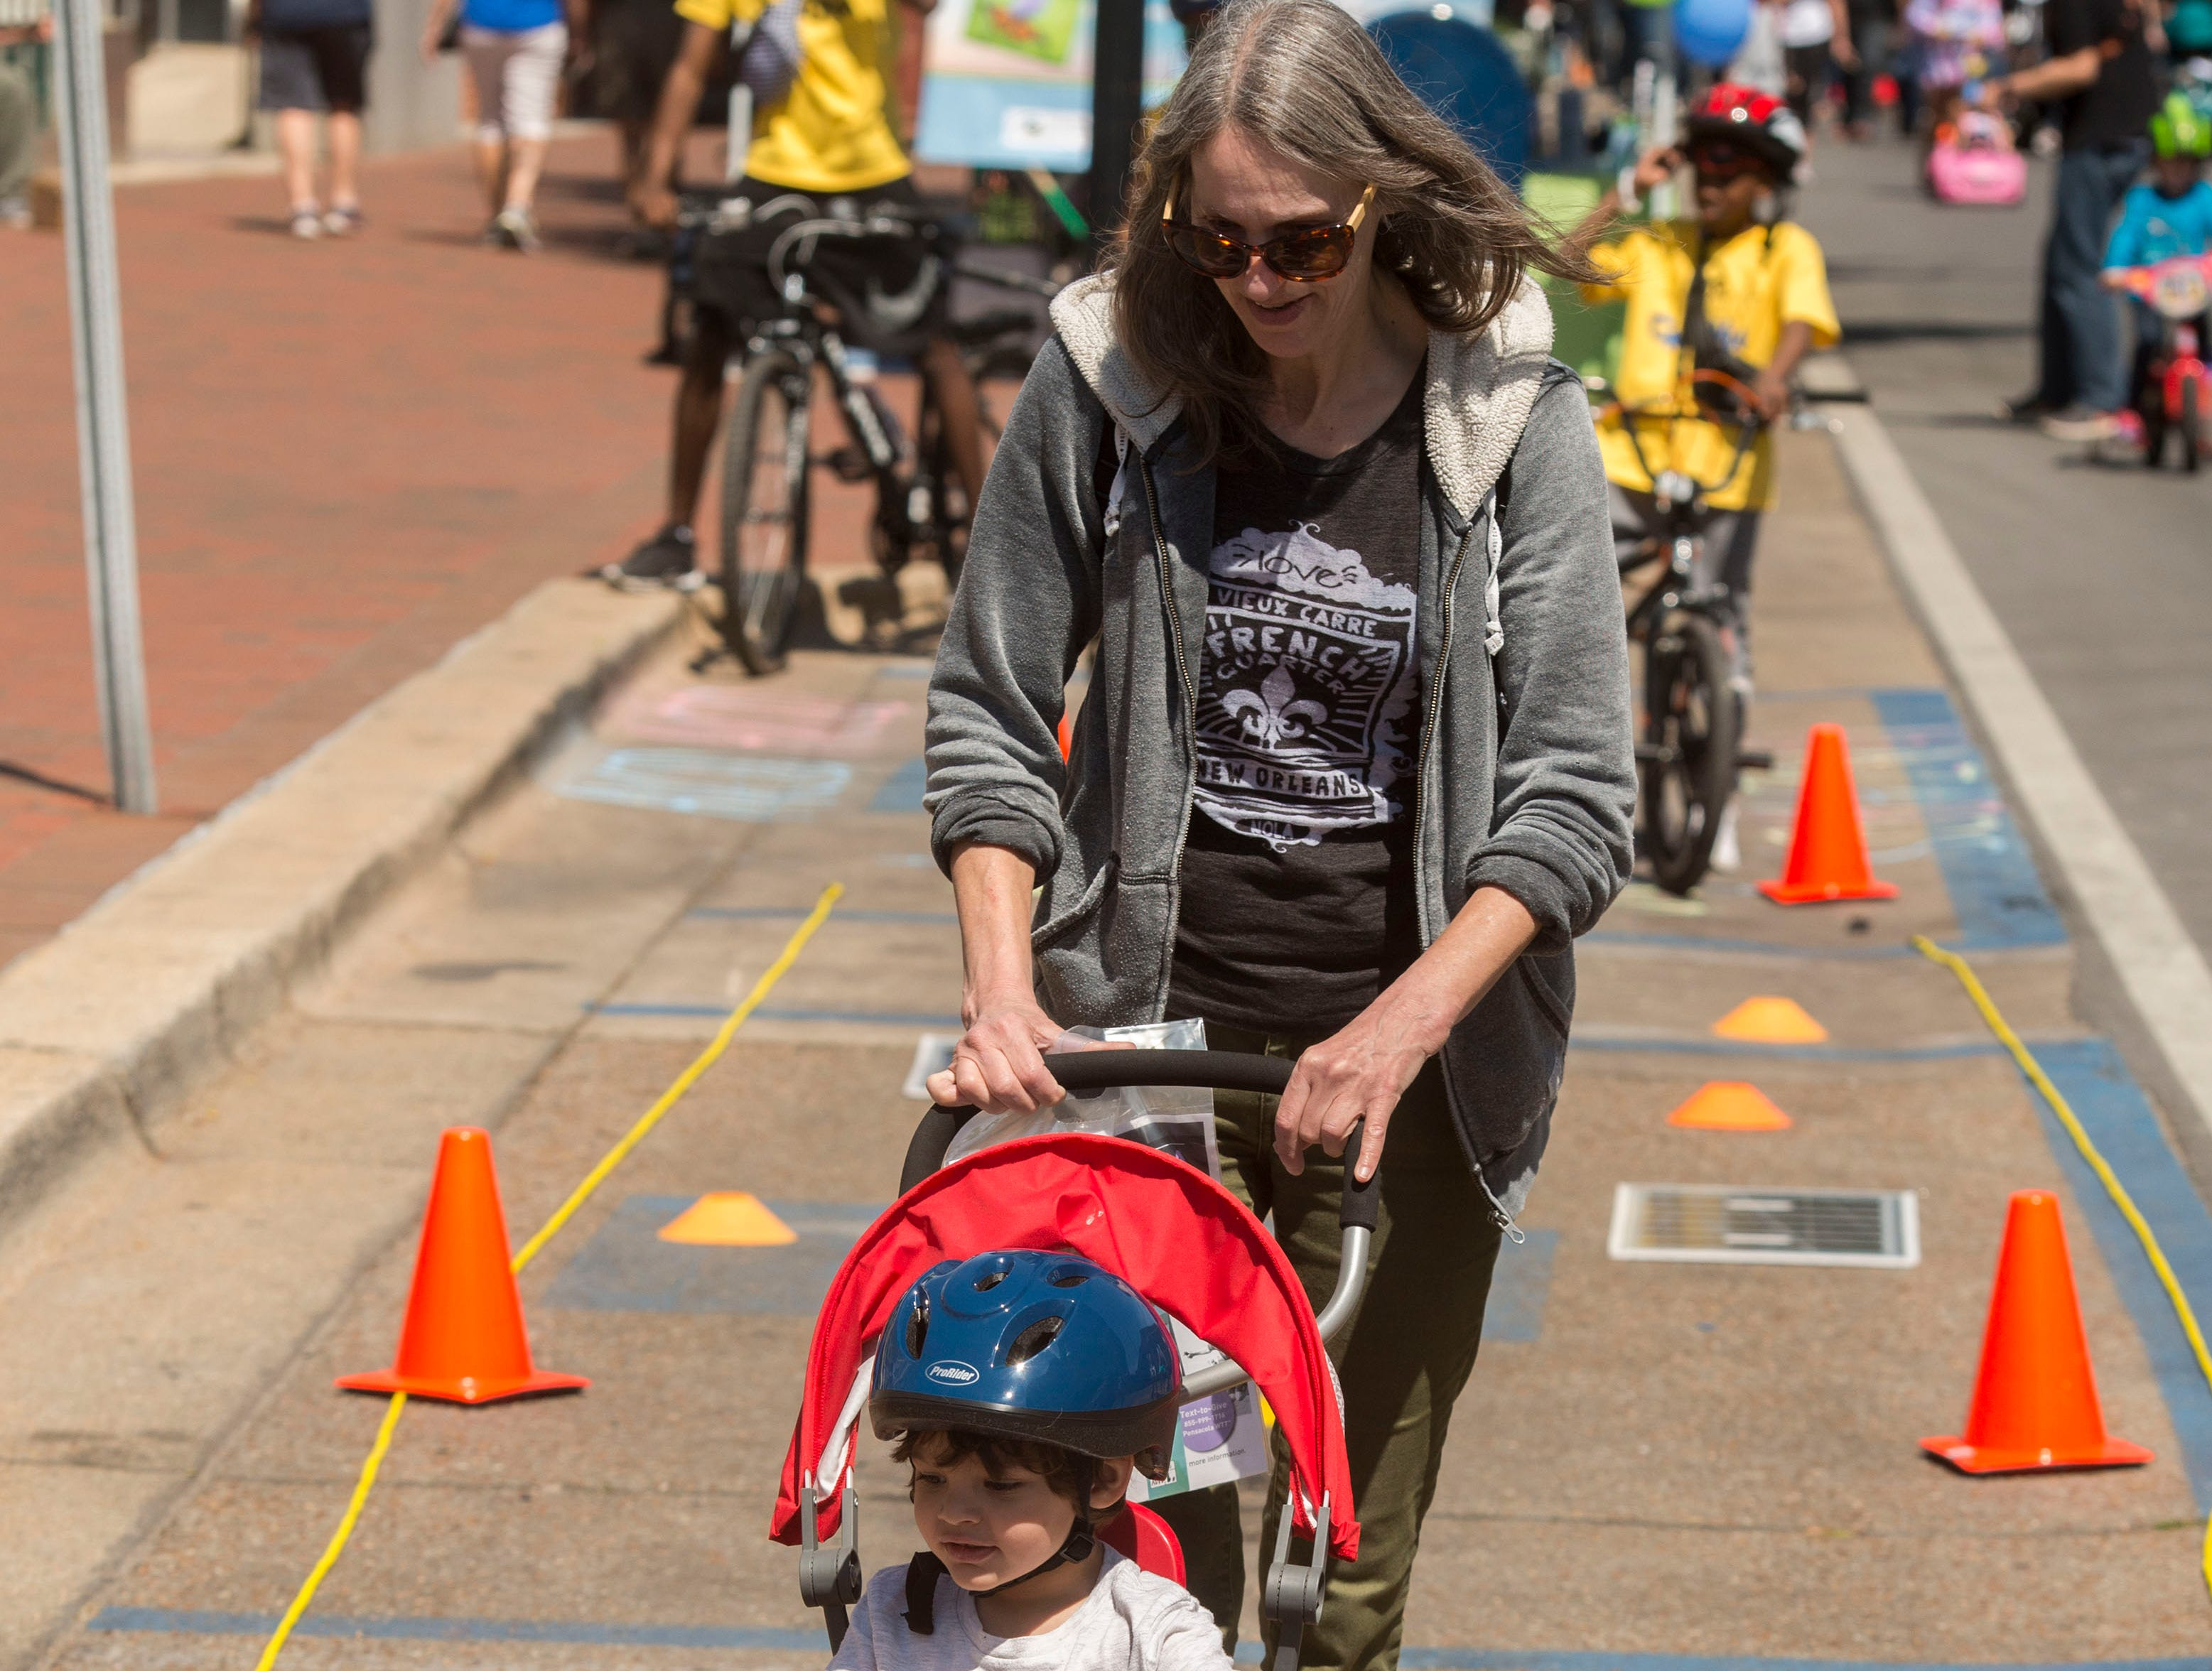 The crowd takes in the activities Saturday, March 23, 2019 during Ciclovia - Pensacola Open Streets, a unique event in downtown Pensacola where the streets are closed to motor traffic and open for biking, walking, dancing and relaxing.